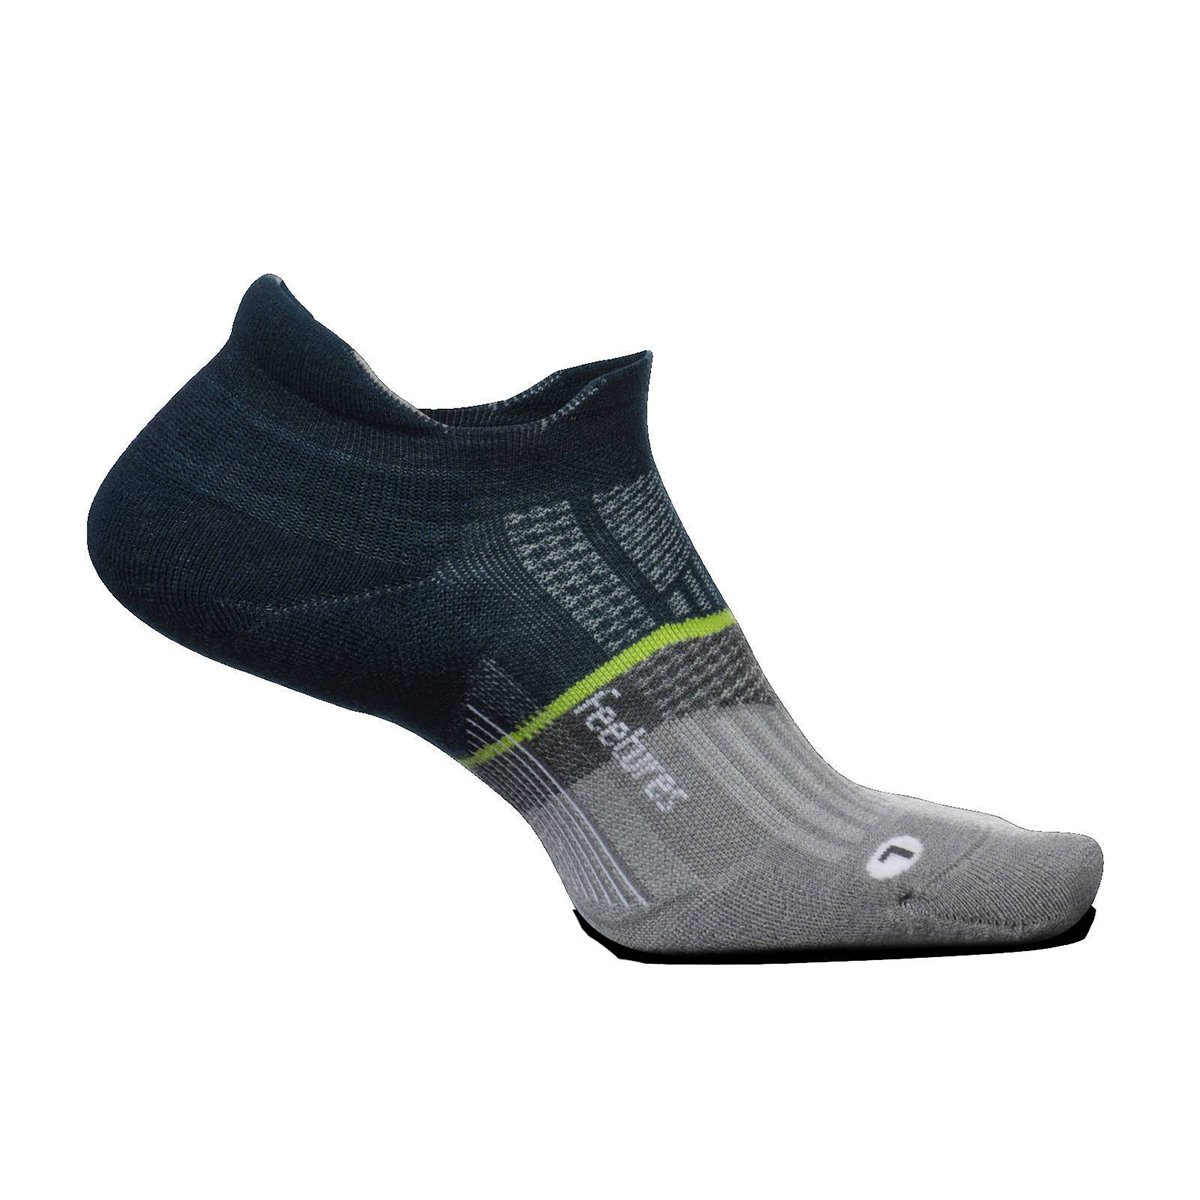 Feetures Merino 10 Cushion No Show Tab Socks - Color: French Navy - Size: S, French Navy, large, image 1